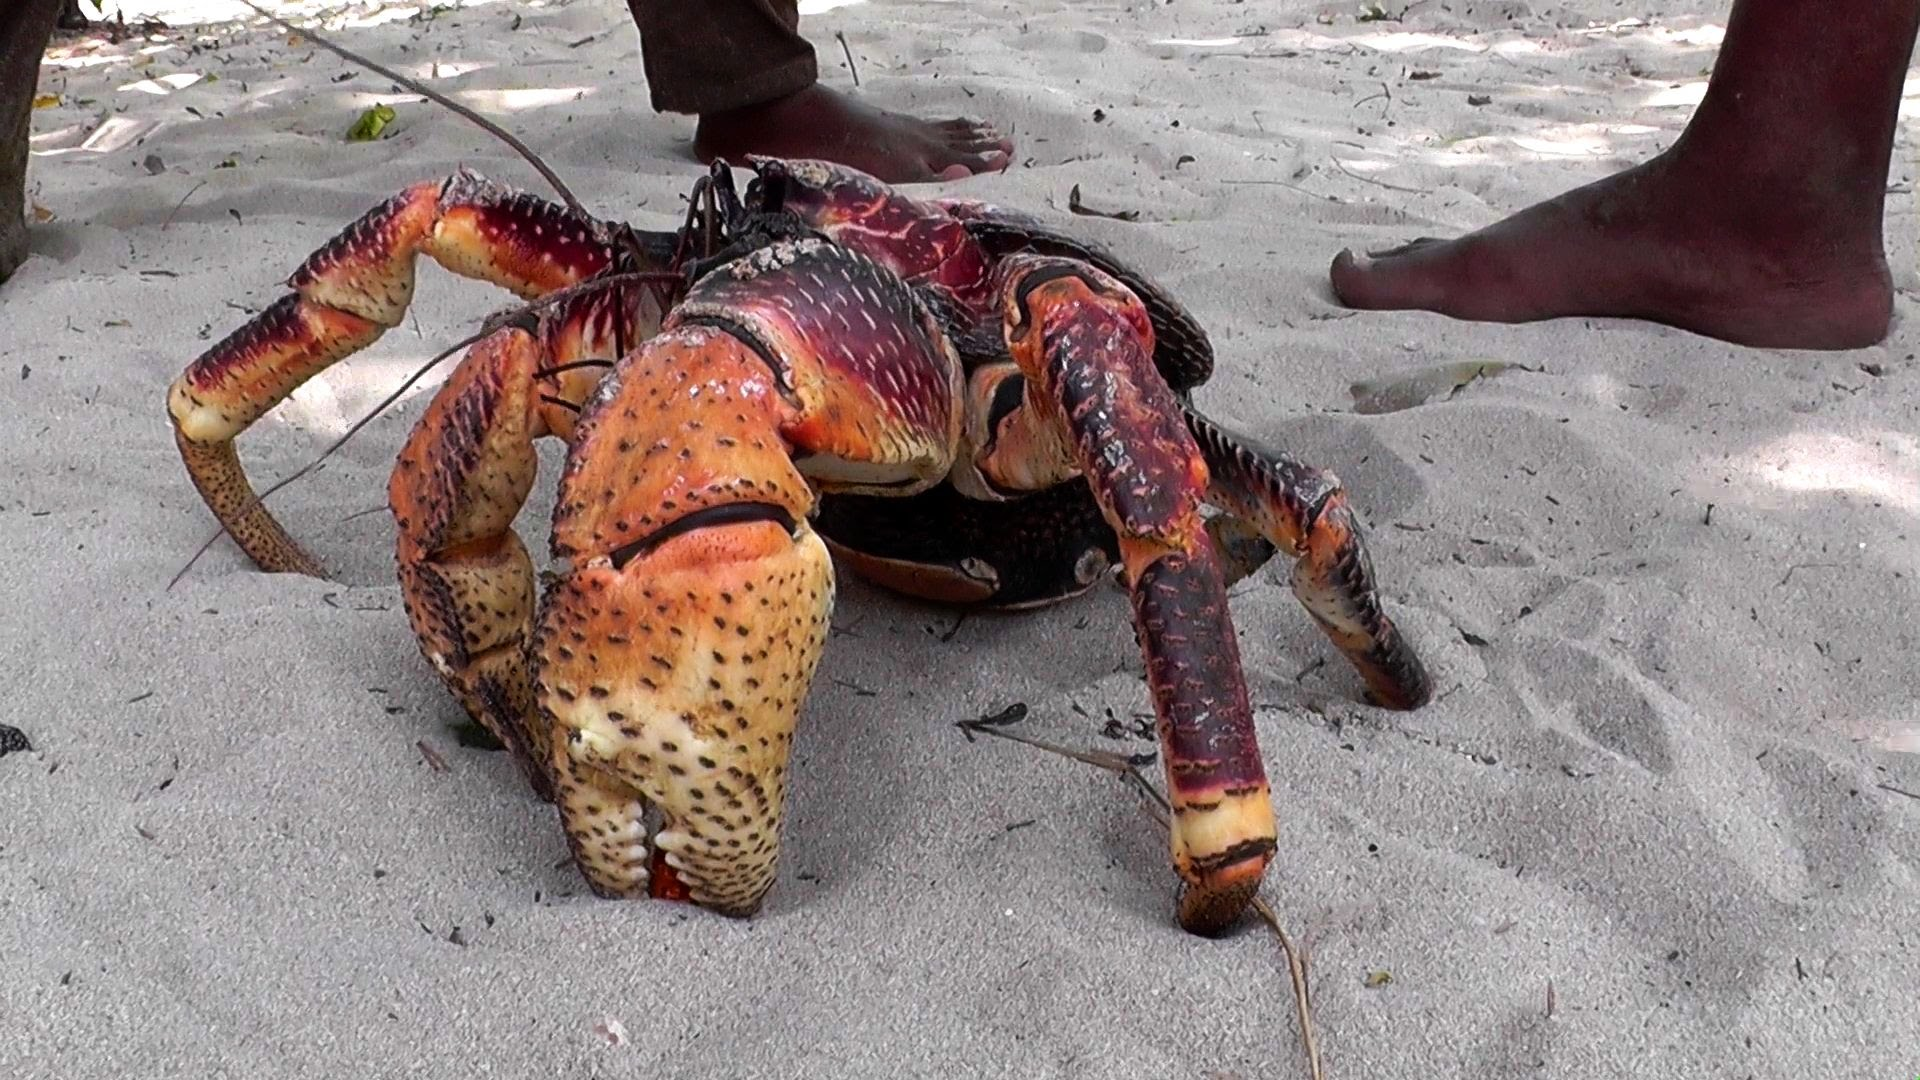 coconut crab, 5 things you shouldn't search on google